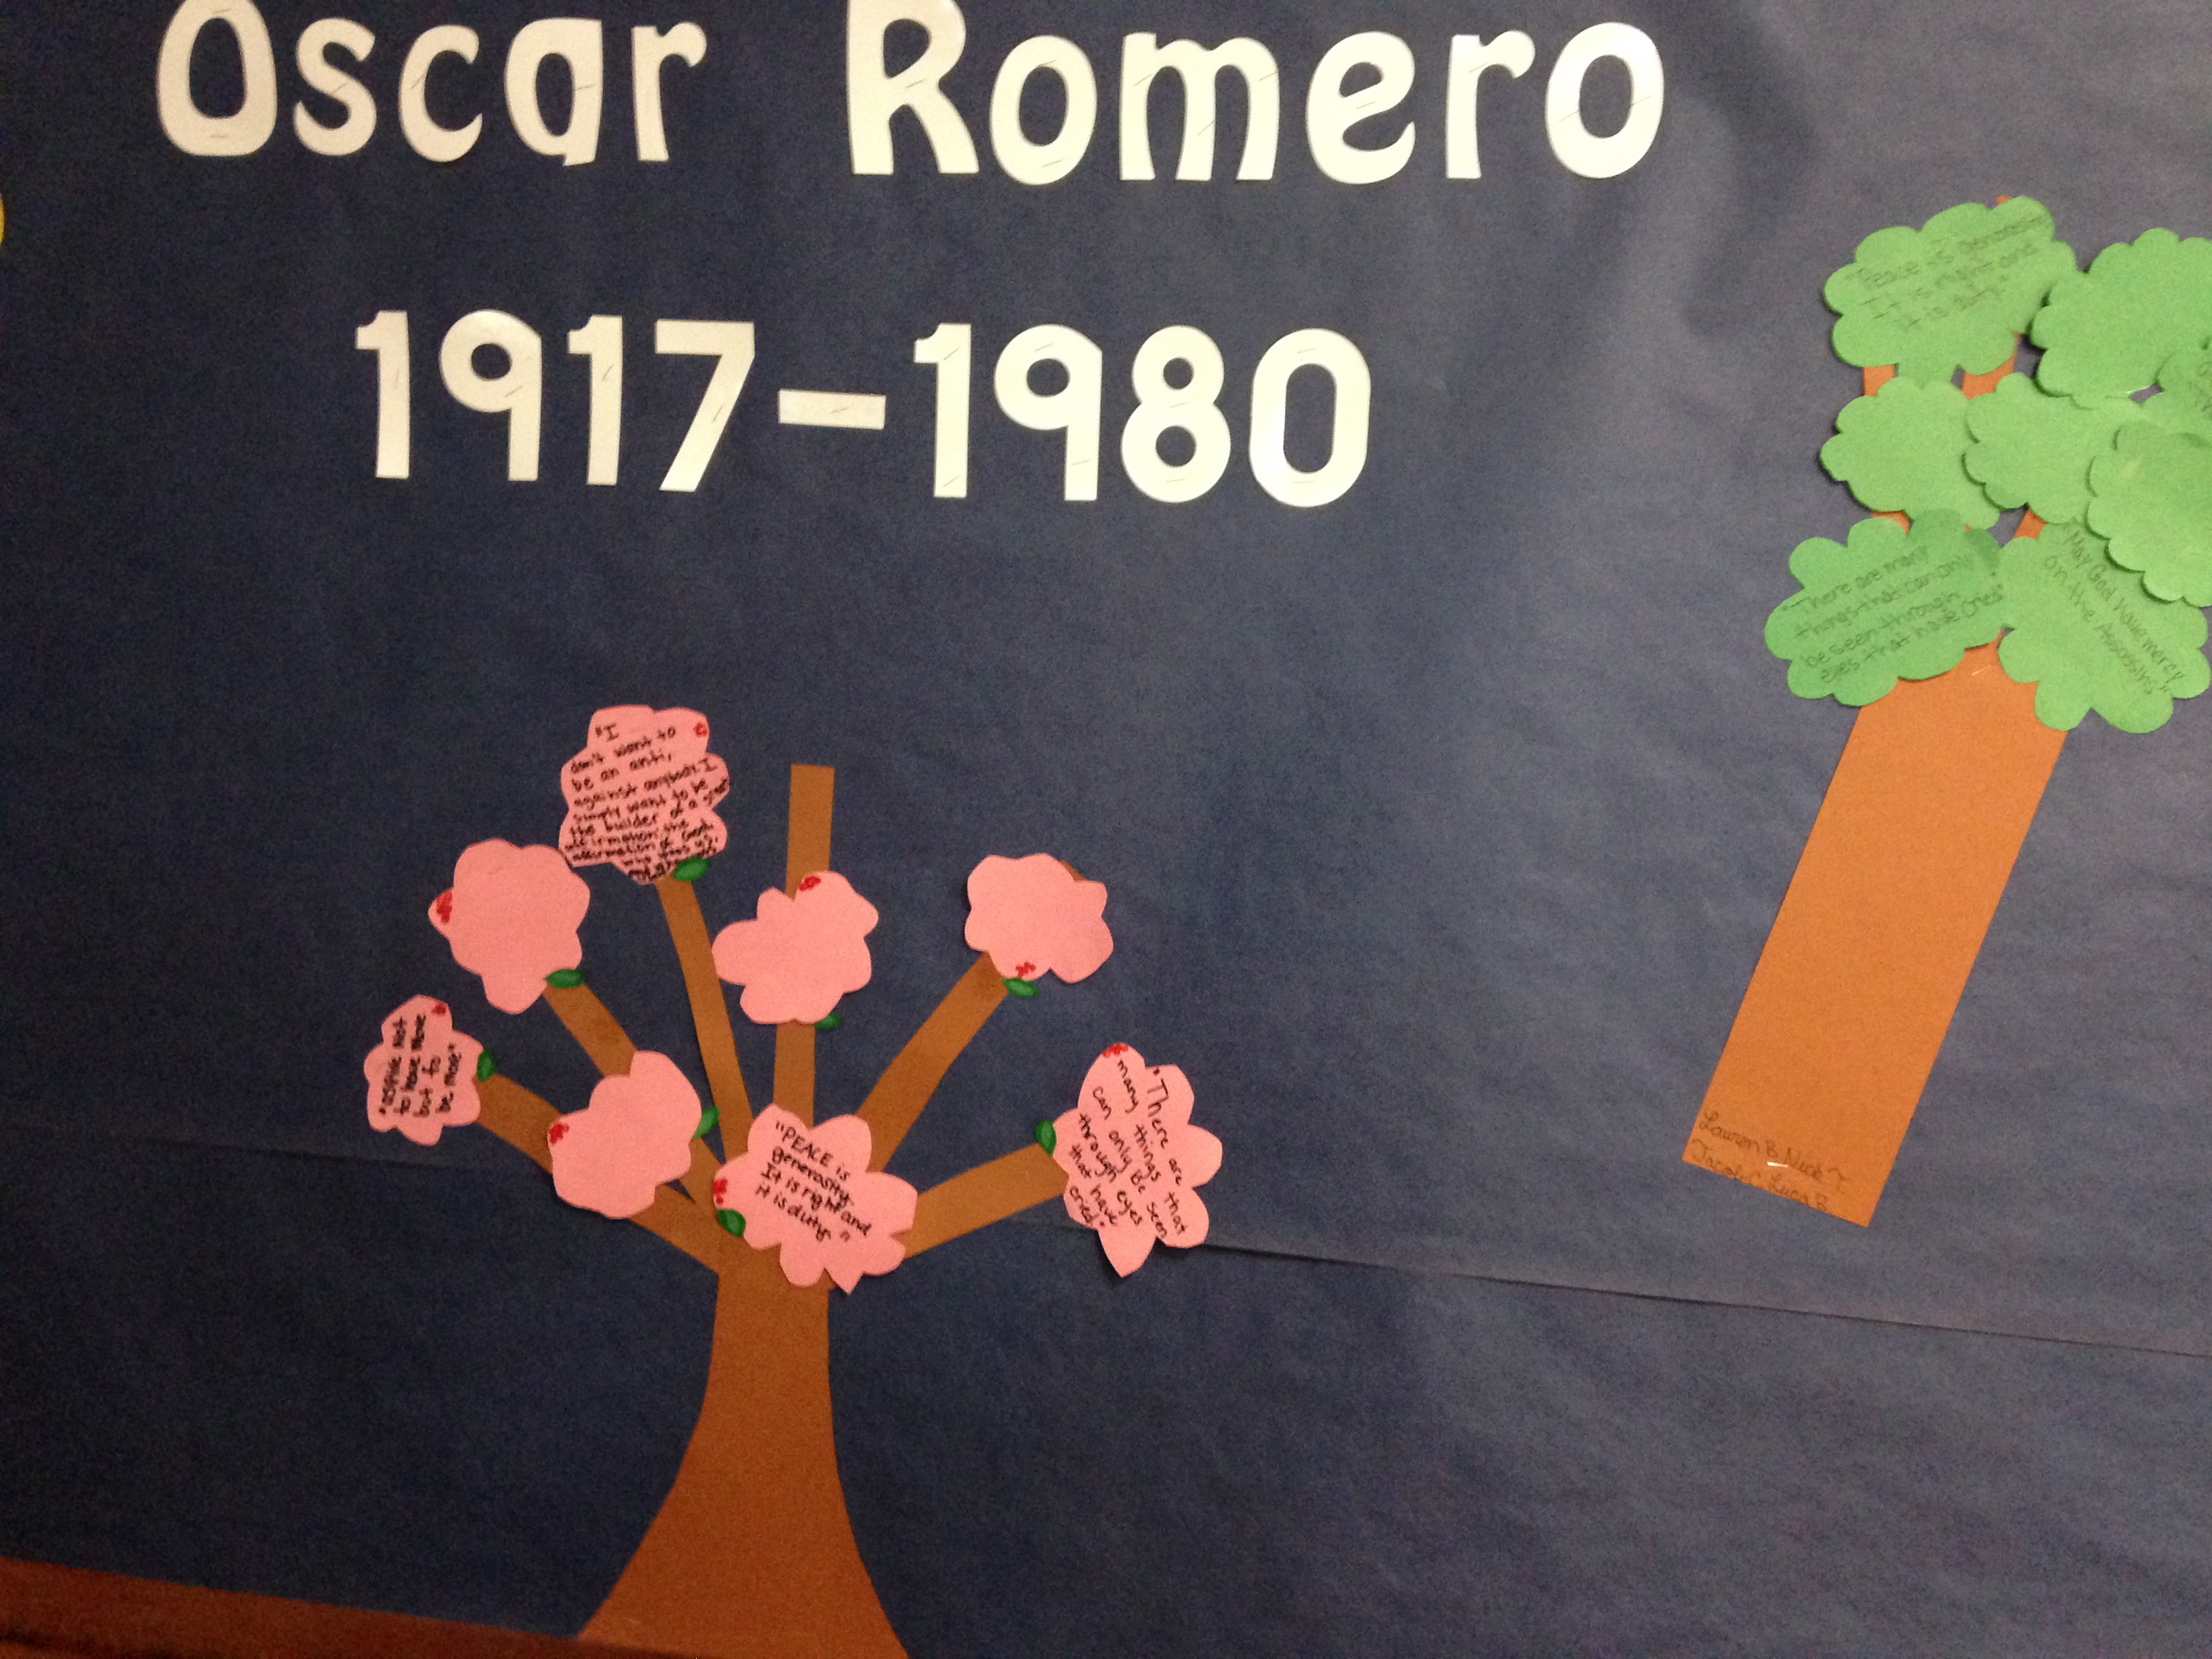 essay on oscar romero Free oscar romero papers, essays, and research papers.